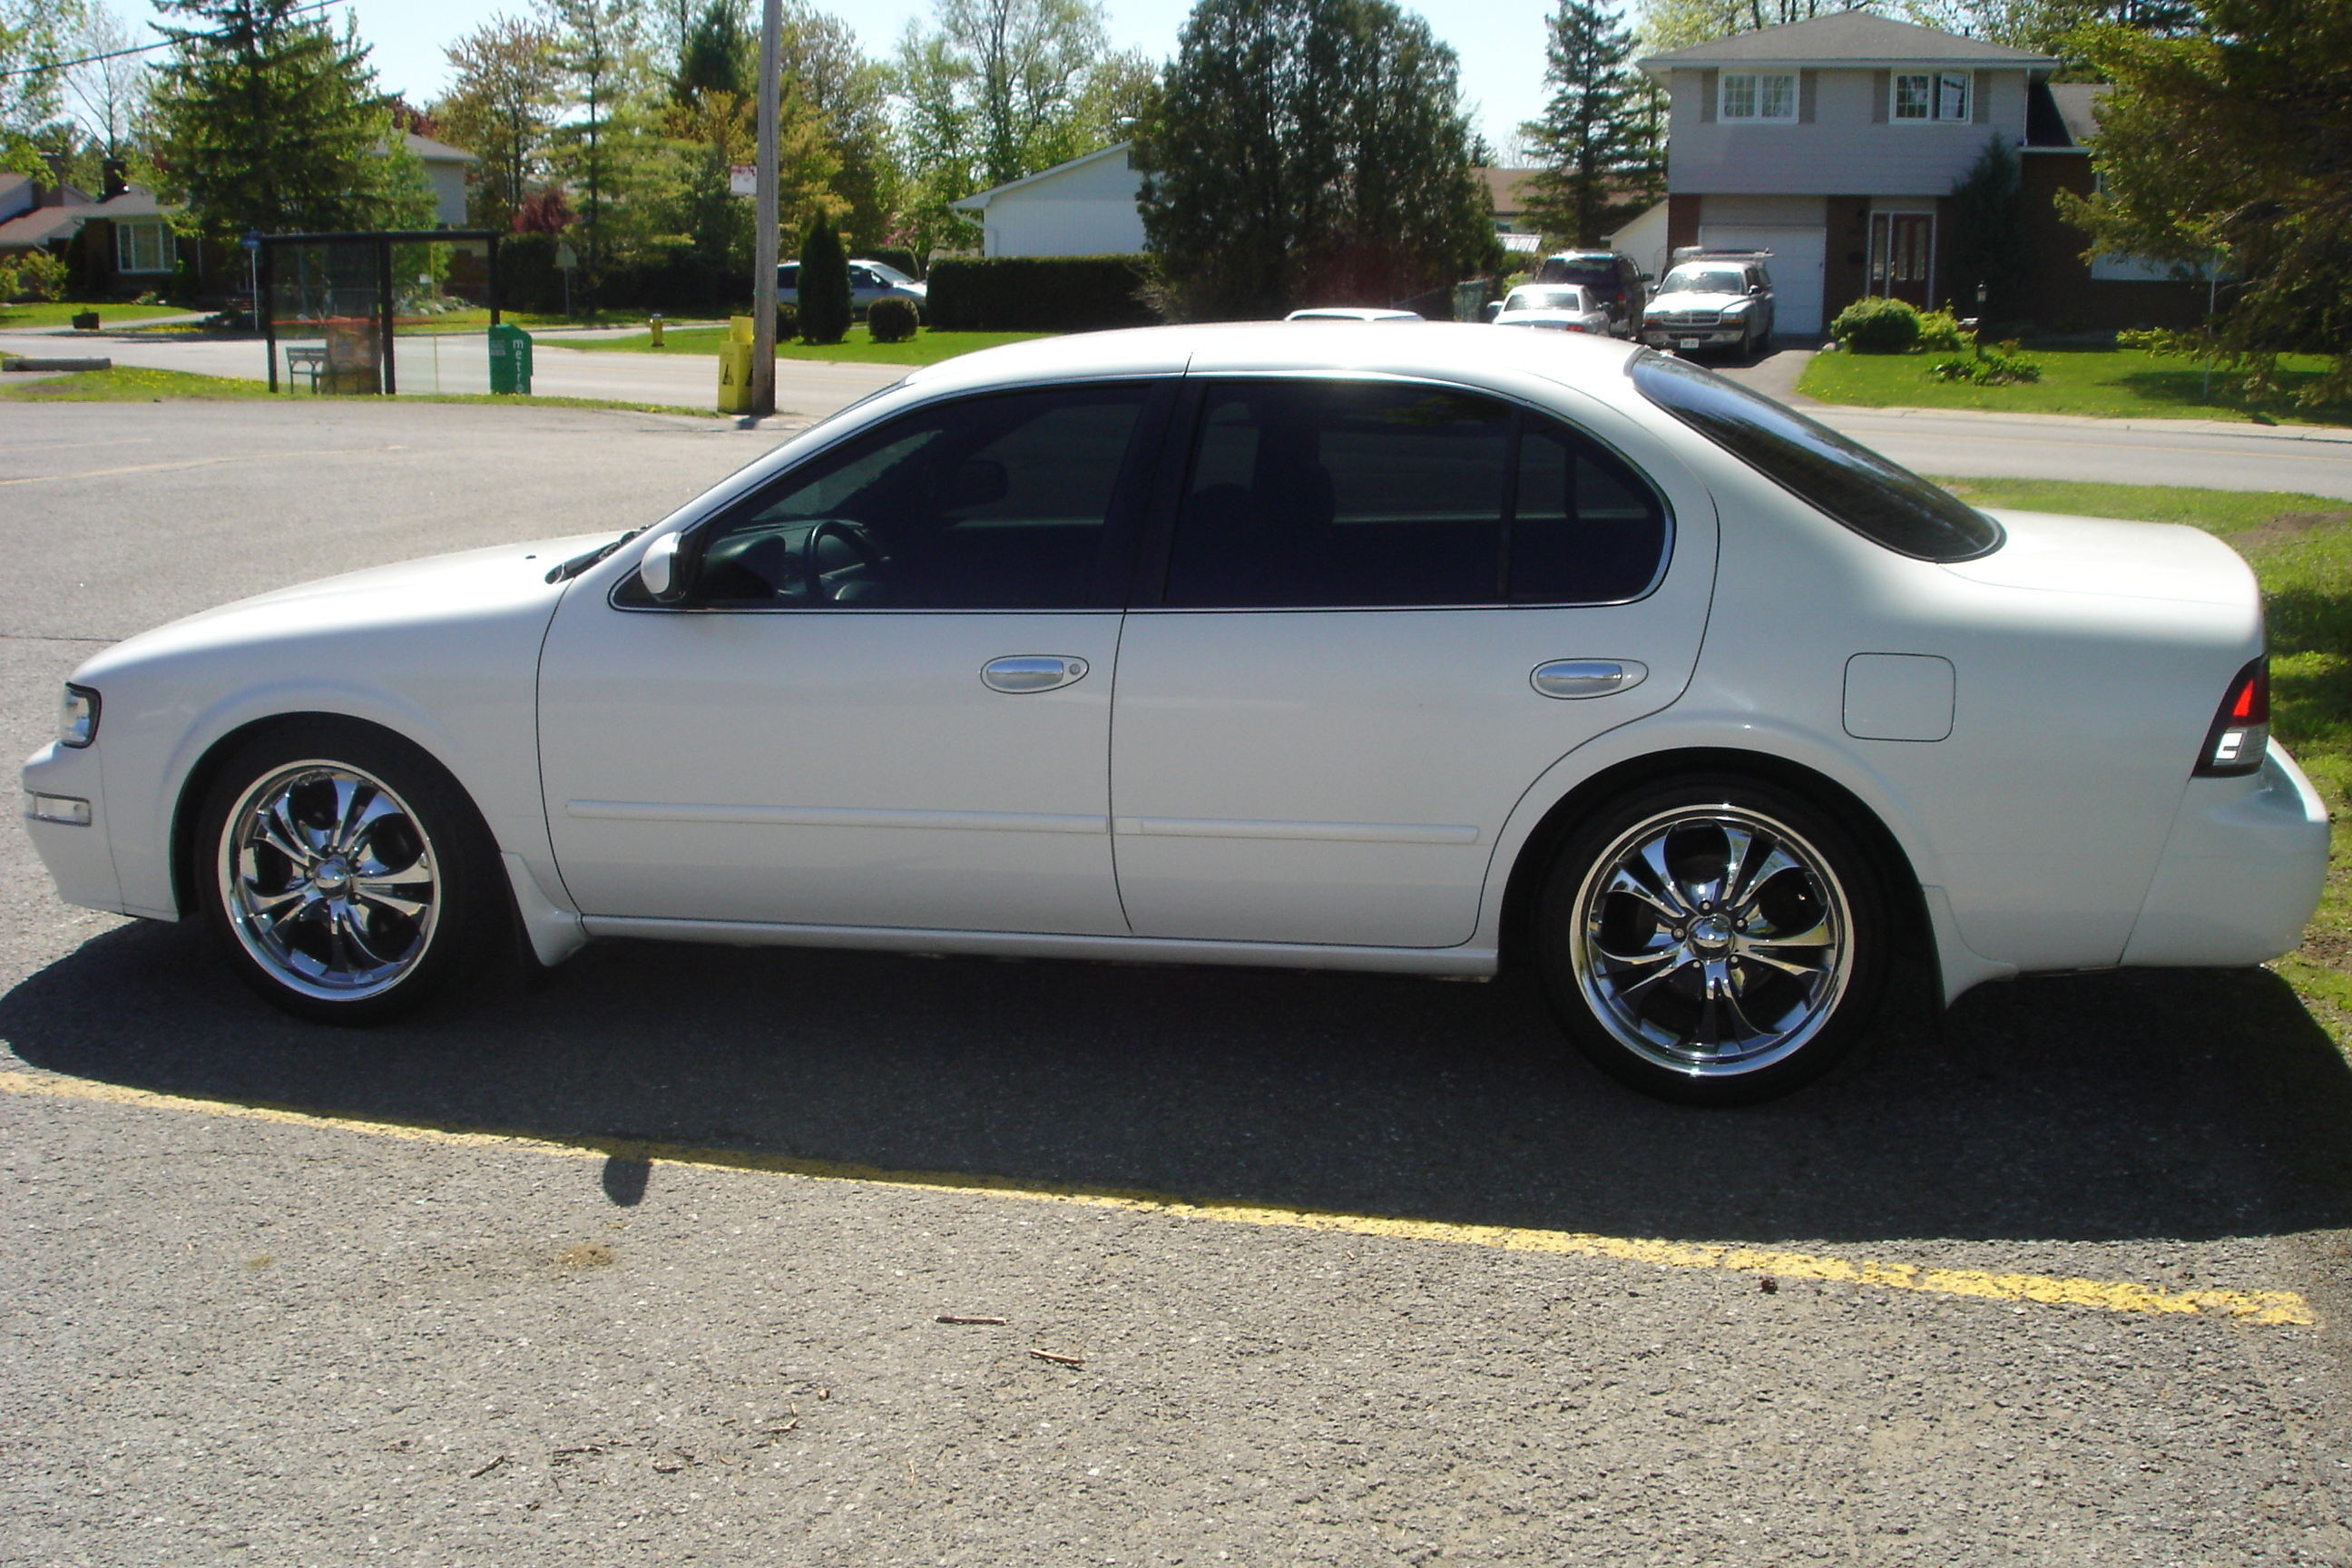 jitumax 1998 nissan maxima specs, photos, modification info at